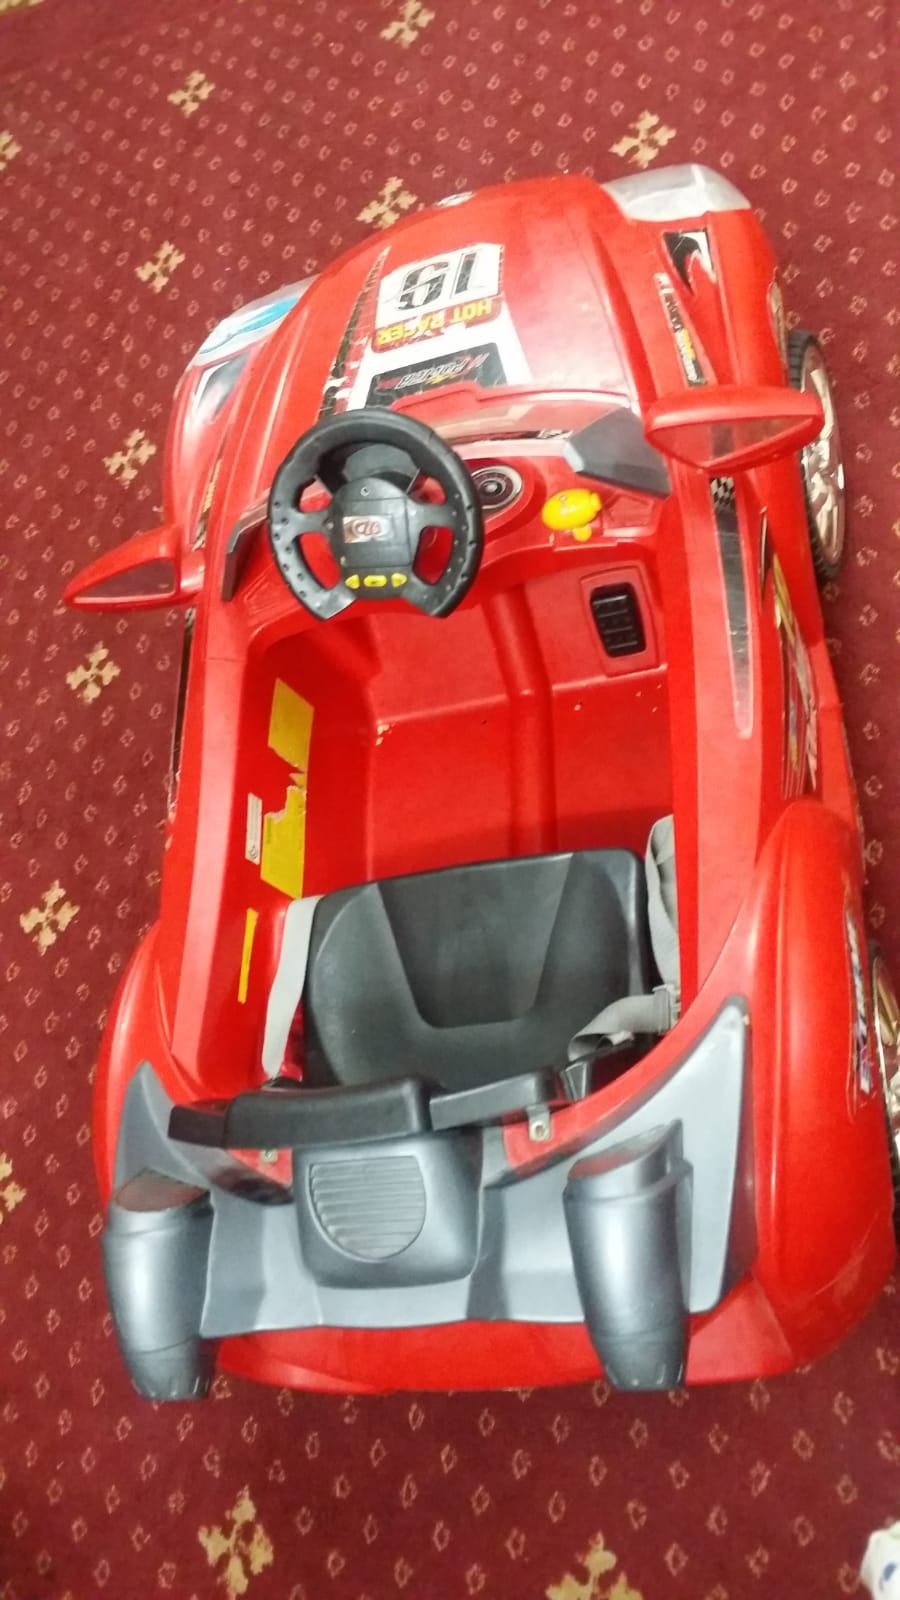 baby car for sale rechargable with remot